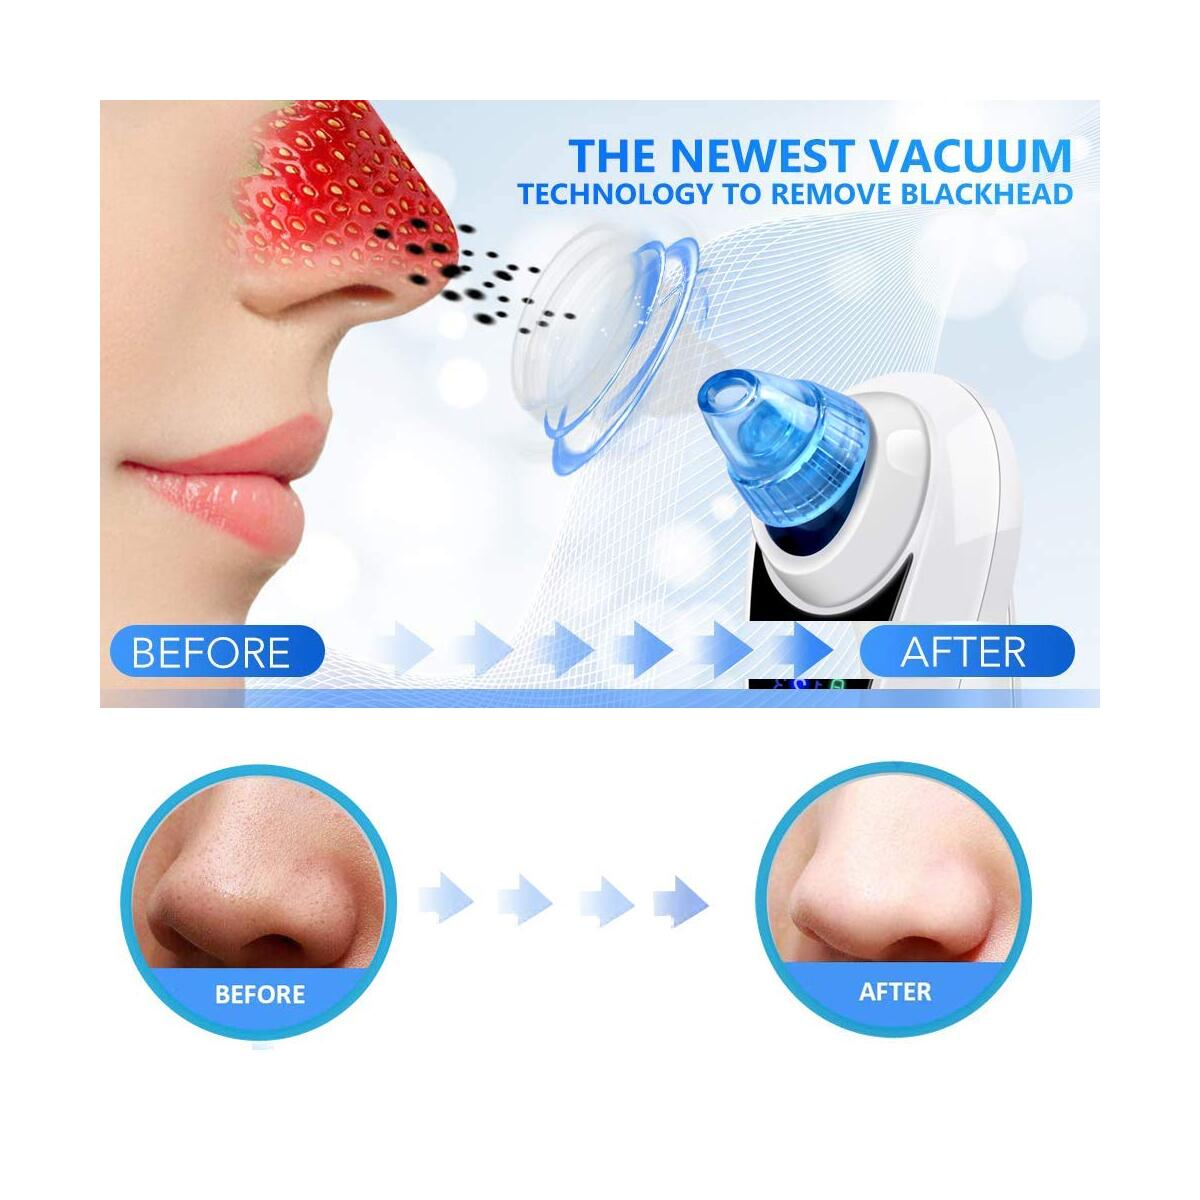 Electric Blackhead Vacuum Pore Cleaner Remover Suction Extractor - Strong Suction Blackhead Acne Removal Cleaning Tool for Facial Skin Care Professional USB Rechargeable with Touch Screen Setting